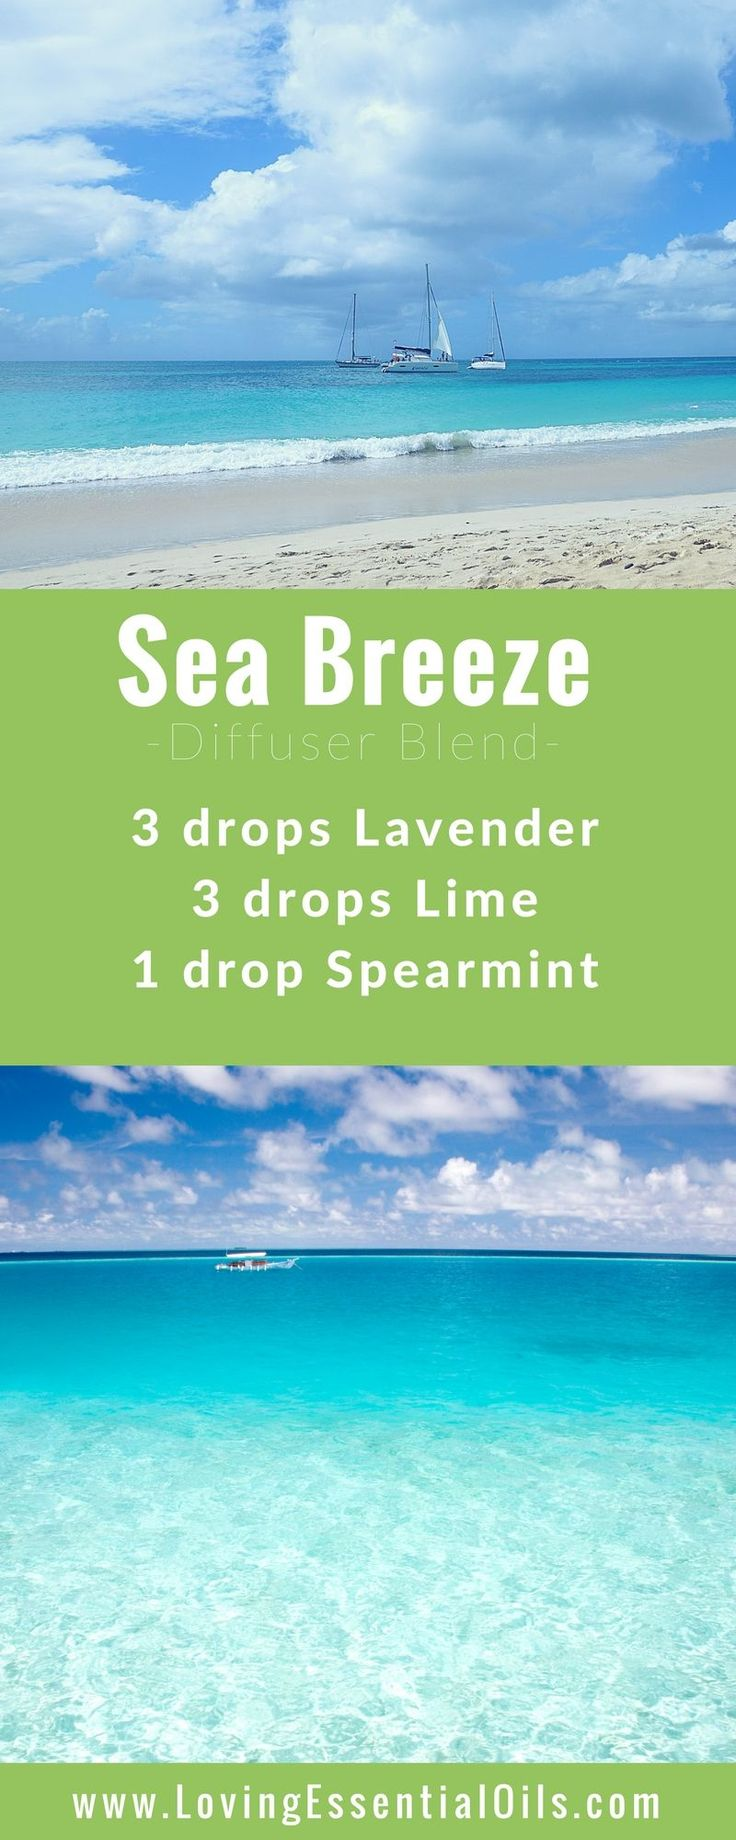 FREE GUIDE: 150 Essential Oil Diffuser Recipes You Will Love - Sea Breeze Diffuser Blend with lavender, lime and spearmint essential oils, happy diffusing! #diffuserguide #diffusingoils #diffuserblends #EssentialOils